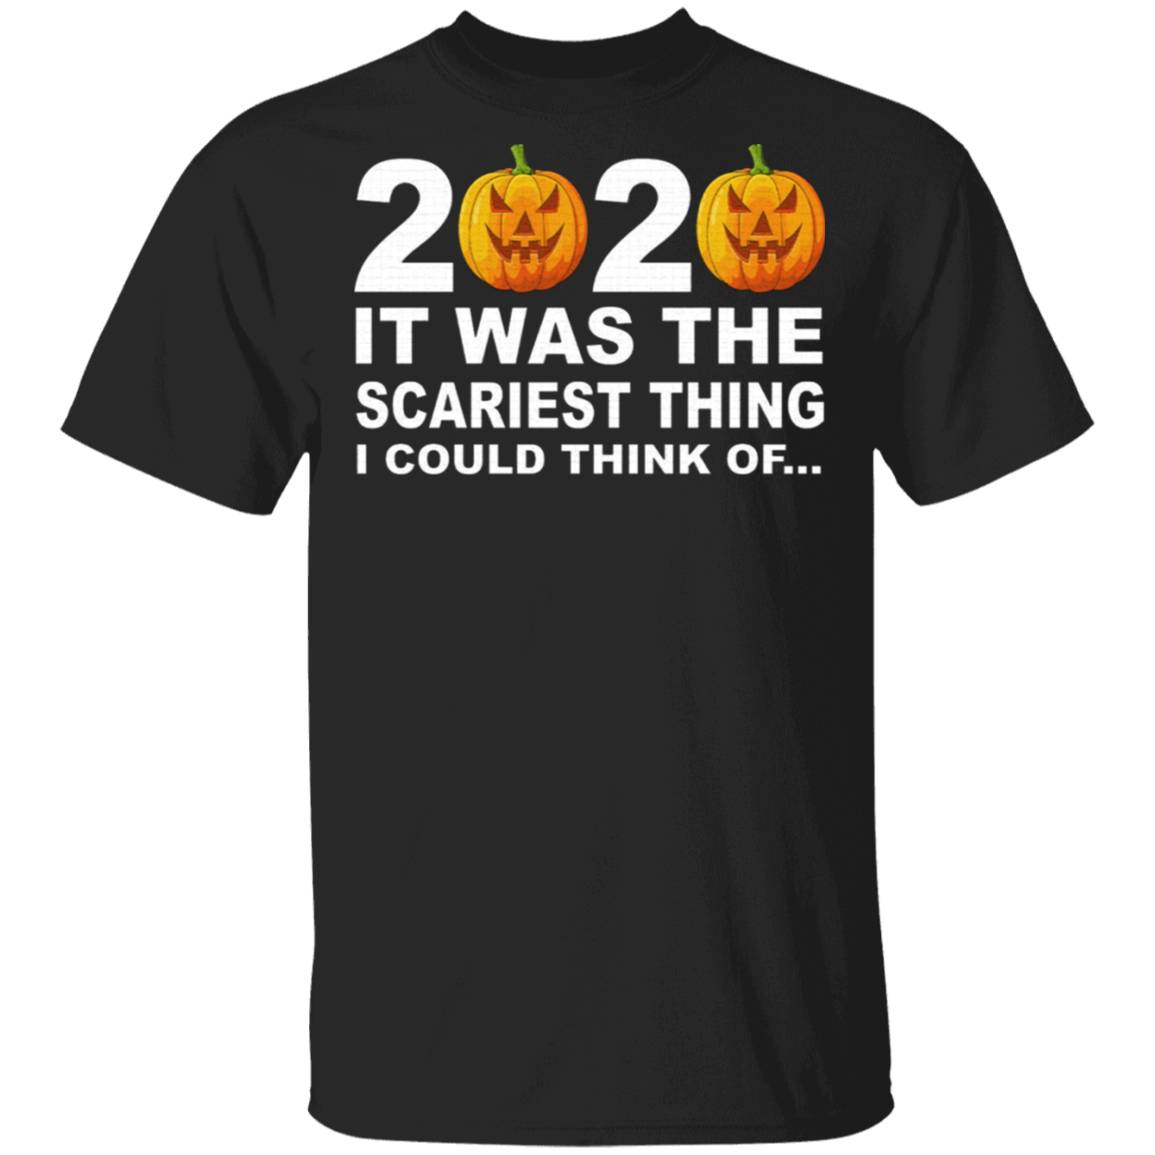 2020 It Was The Scariest Thing I Could Think Of T-Shirt